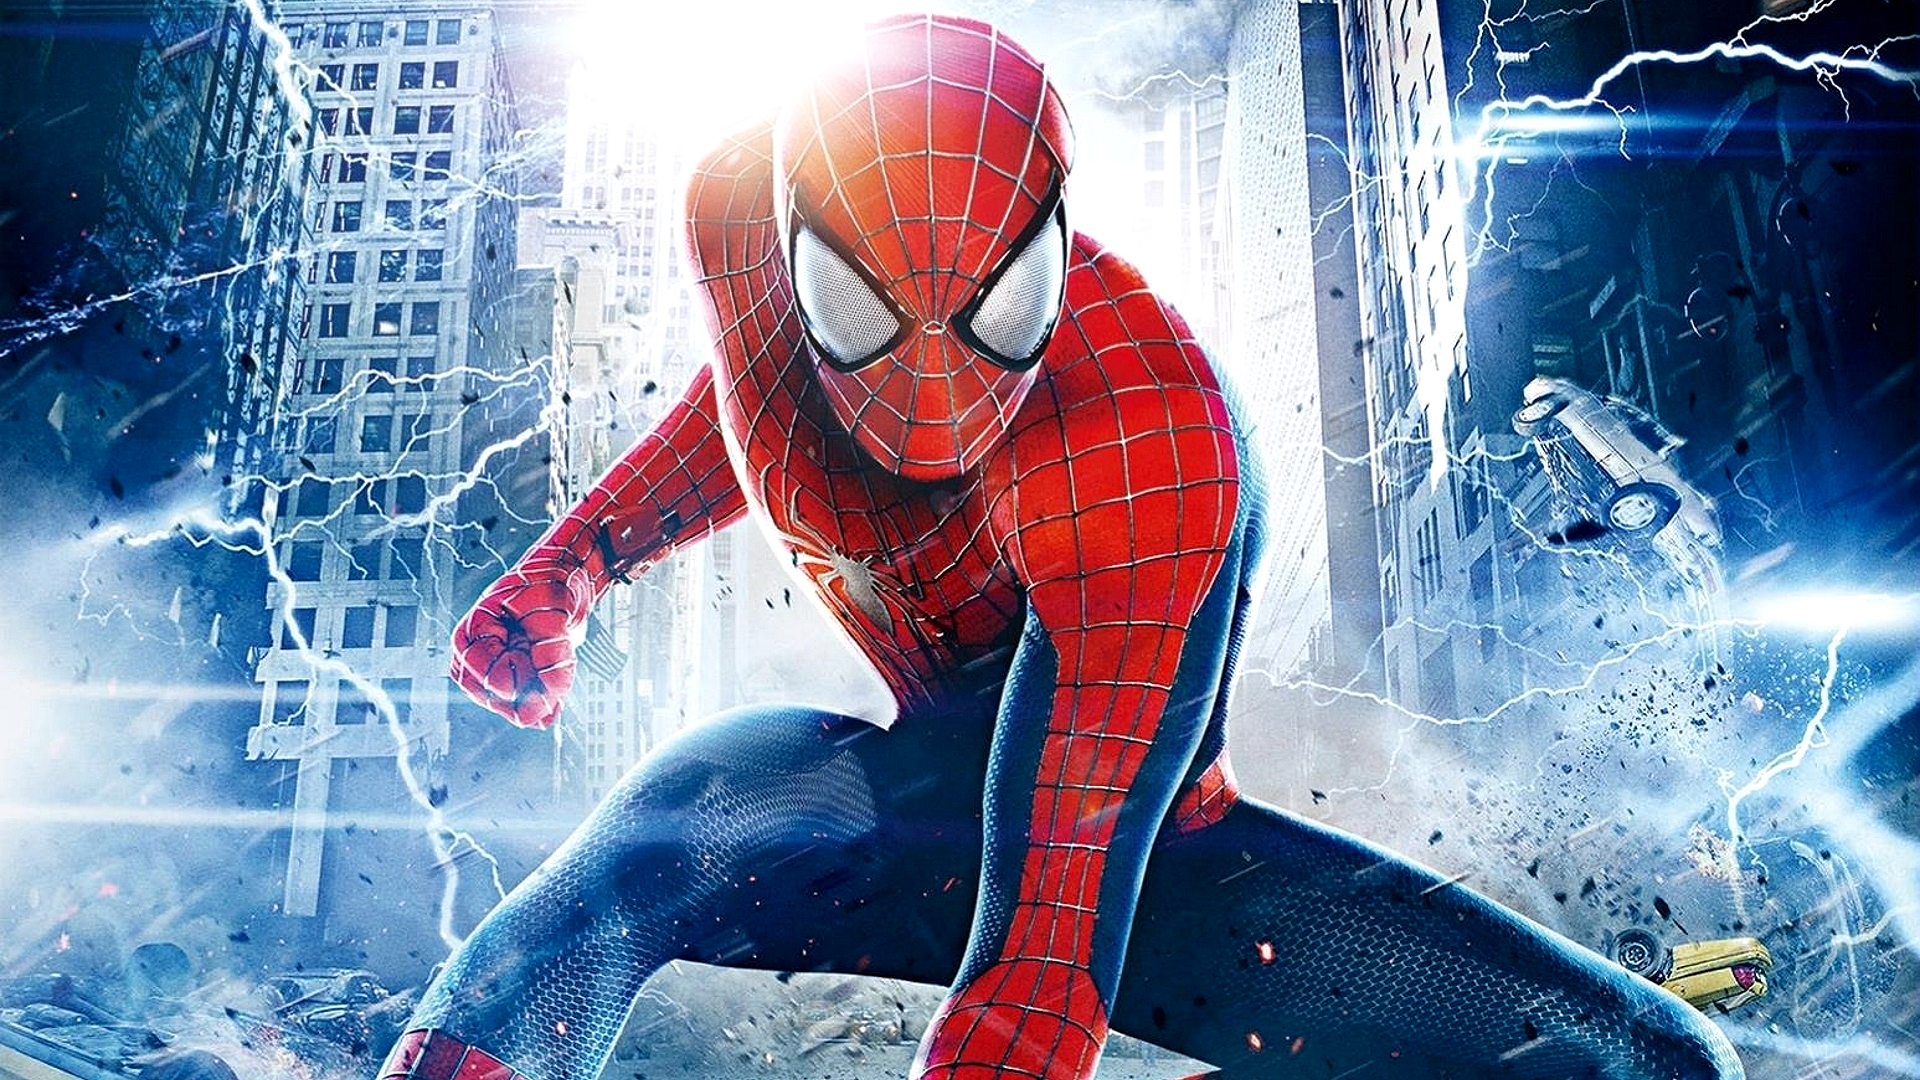 The Amazing SpiderMan 2 Movie Poster Wallpaper 4 by